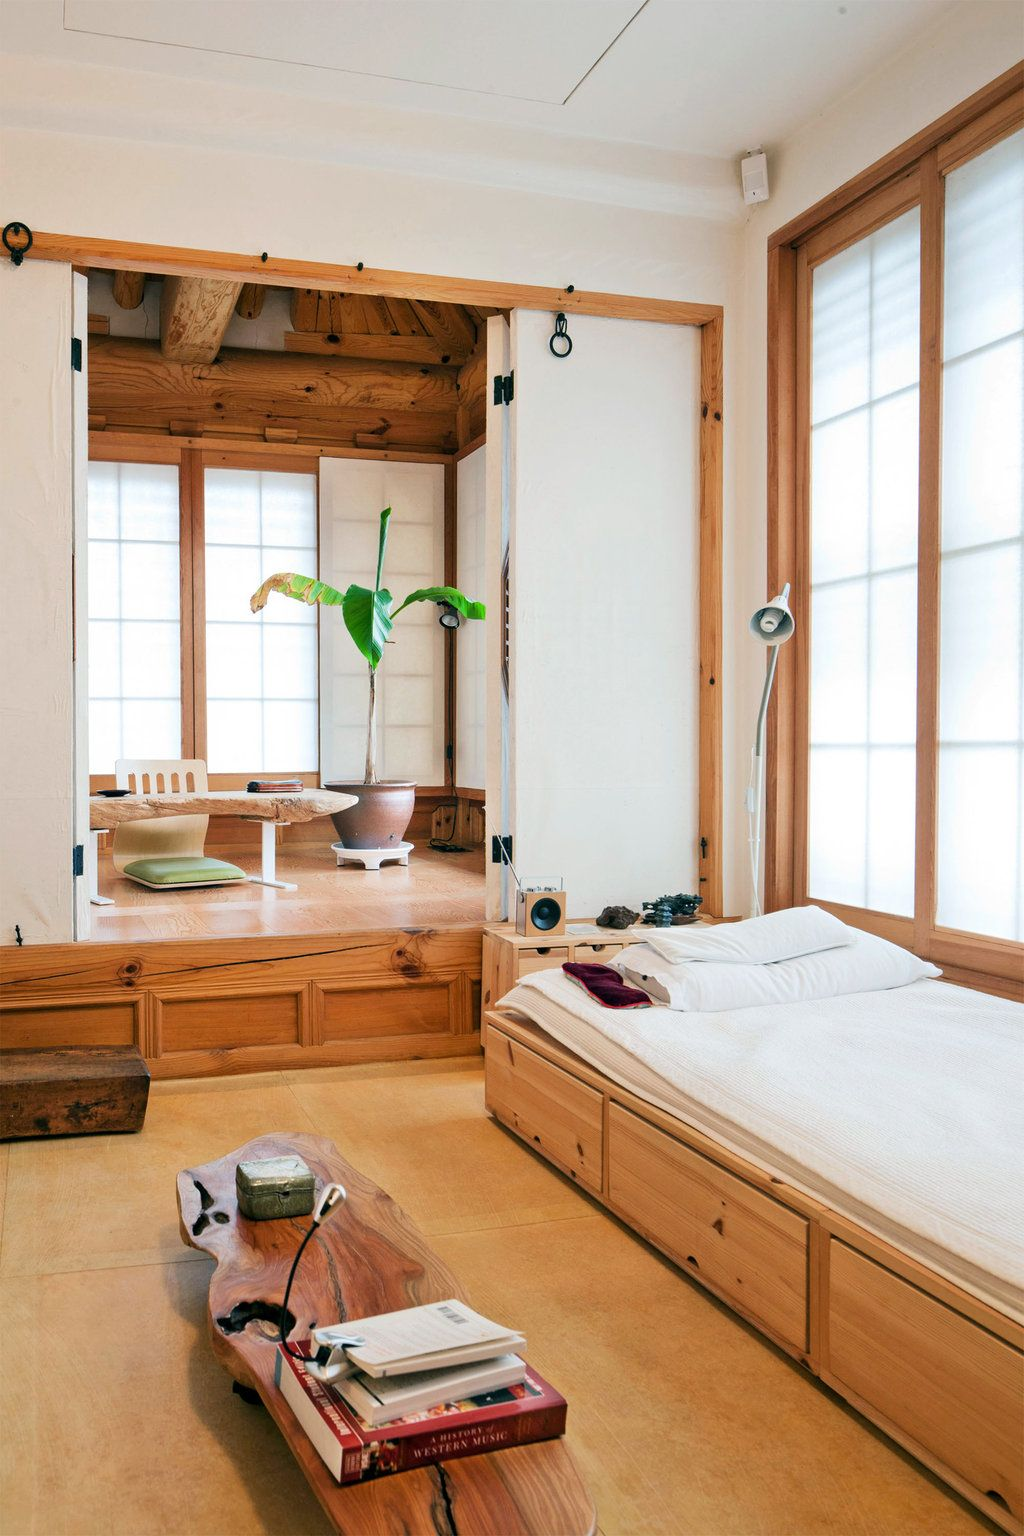 Interior design of a hanok in seoul south korea this home belongs to hongnam kim an art historian her bedroom pictured has an adjoining reading room